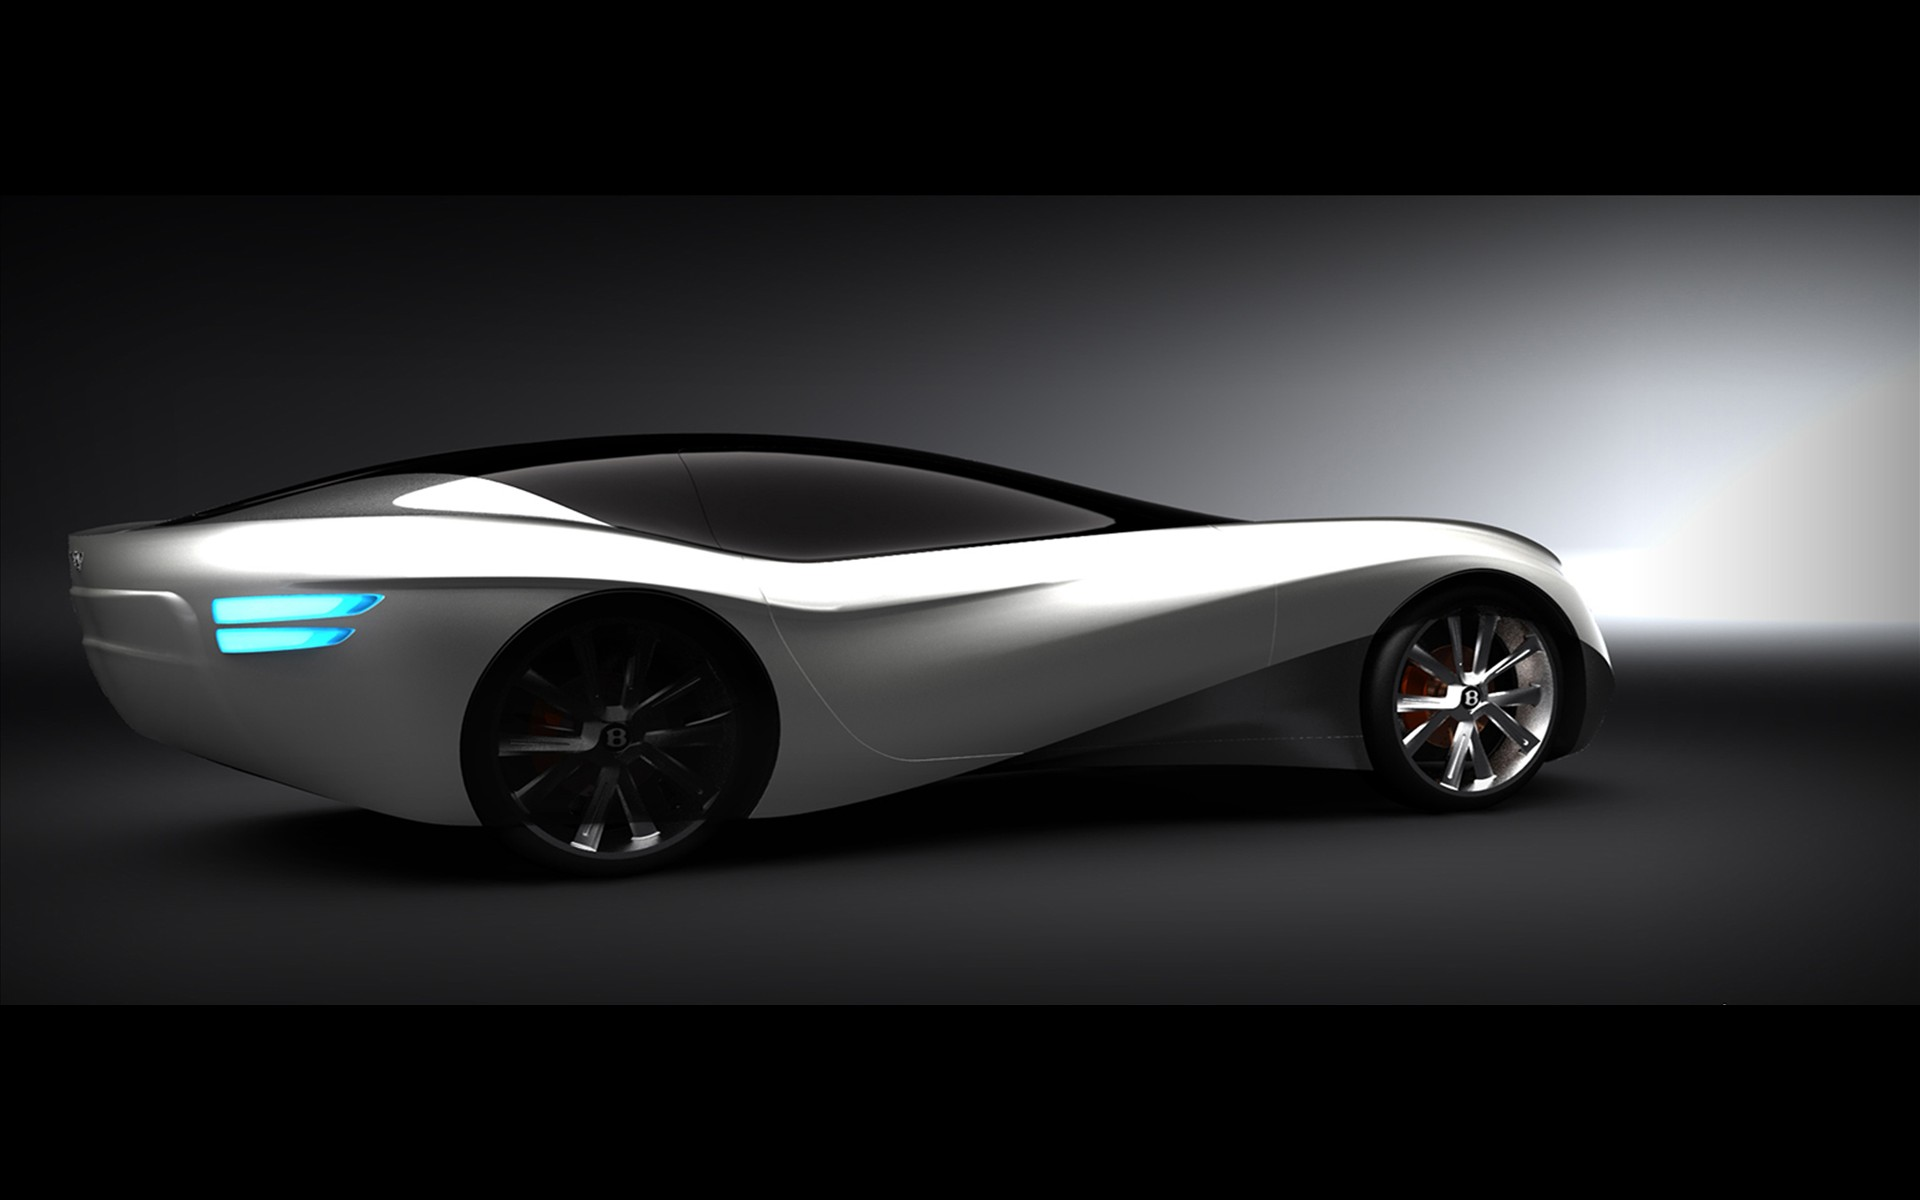 Cars Future International Design Stars Hd 129462 Wallpaper wallpaper